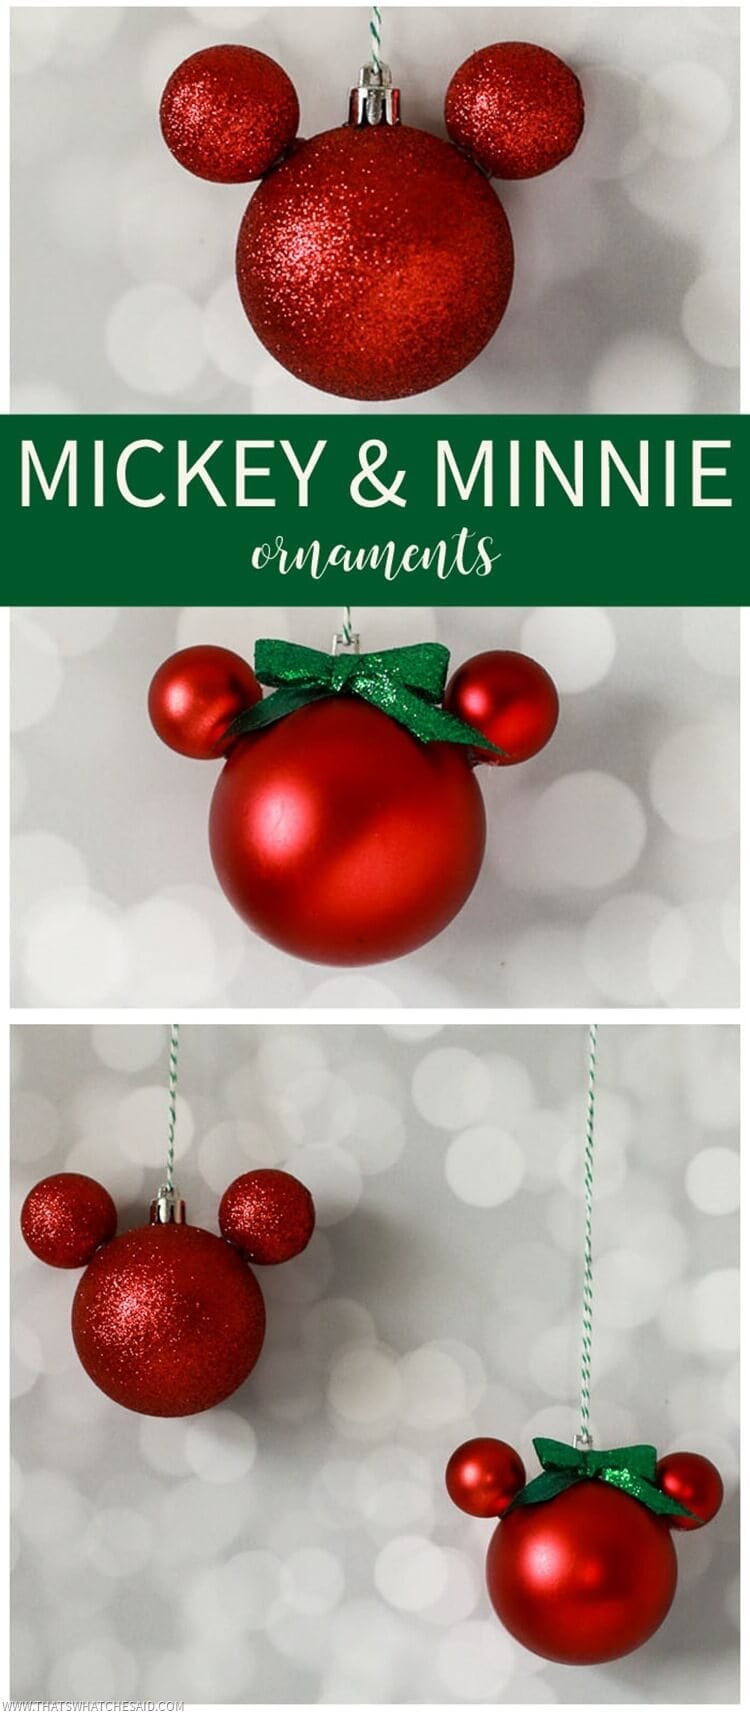 Make your own Mickey & Minnie Ornaments from plastic ball ornaments!